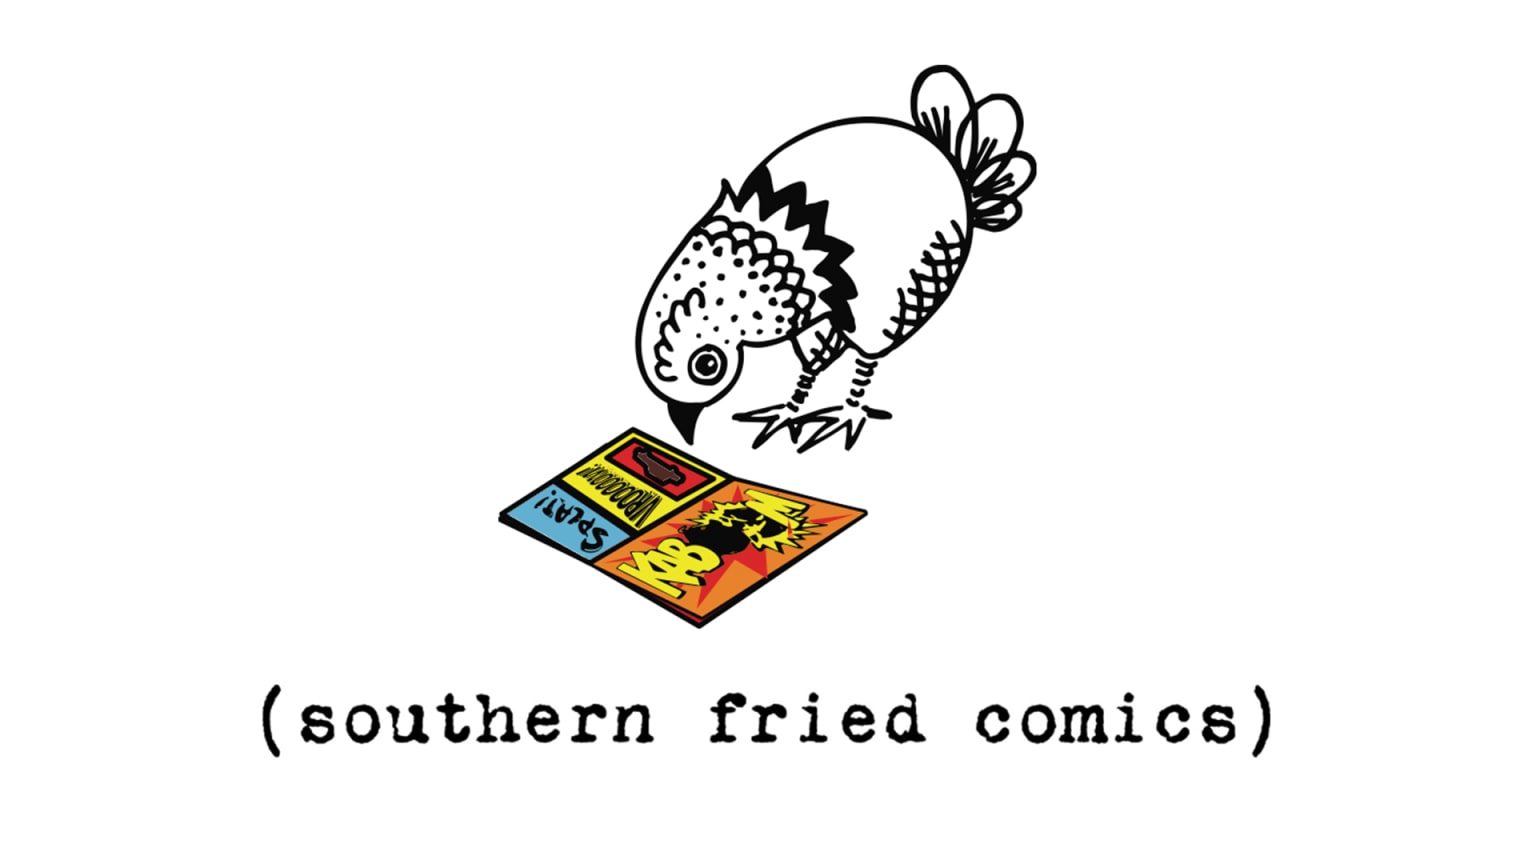 Southern Fried Comics Commercial